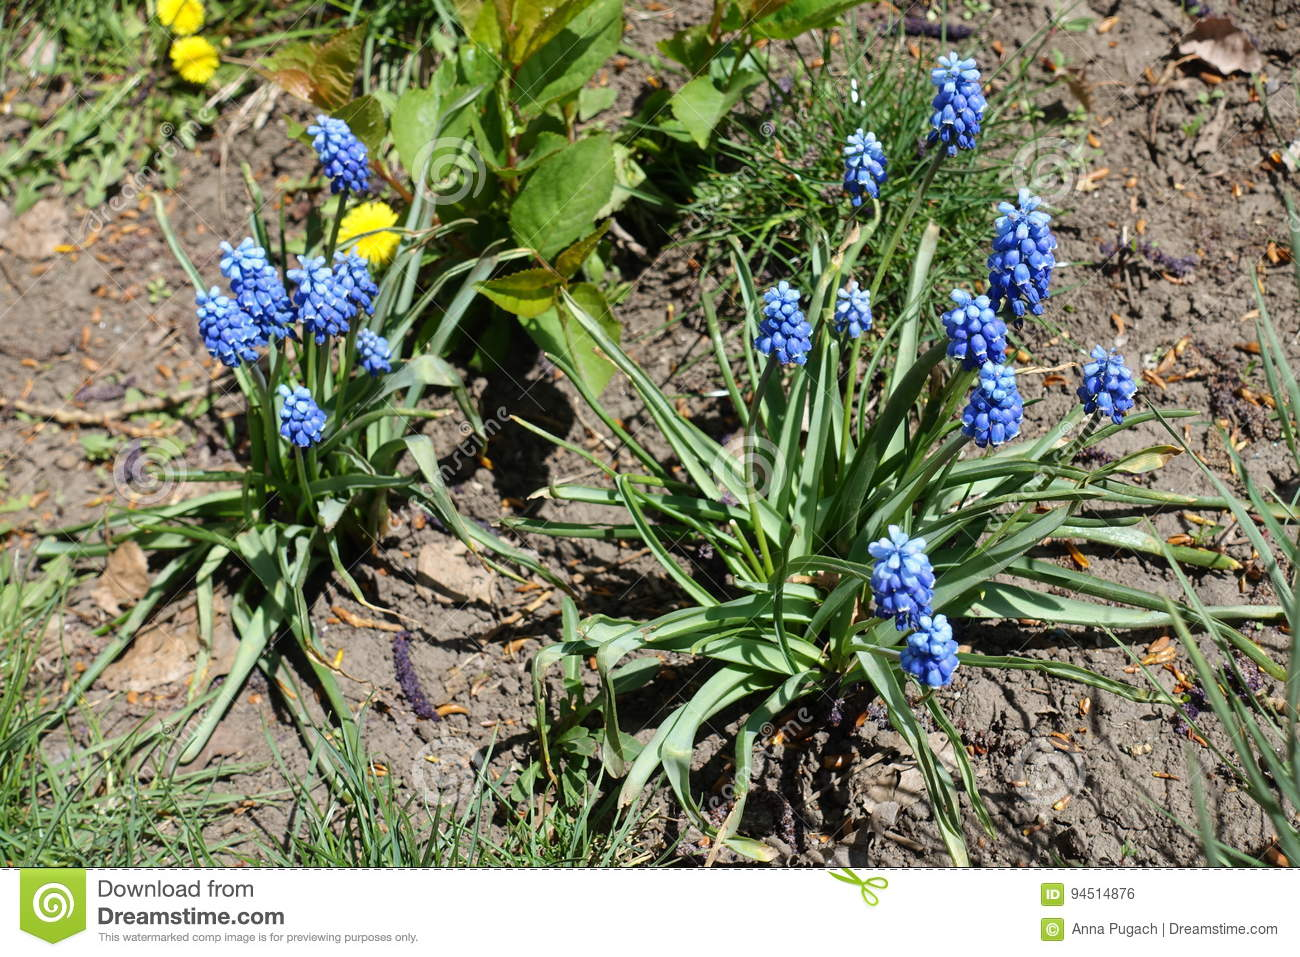 Two Plants Of Muscari Armeniacum With Blue Flowers Stock Photo